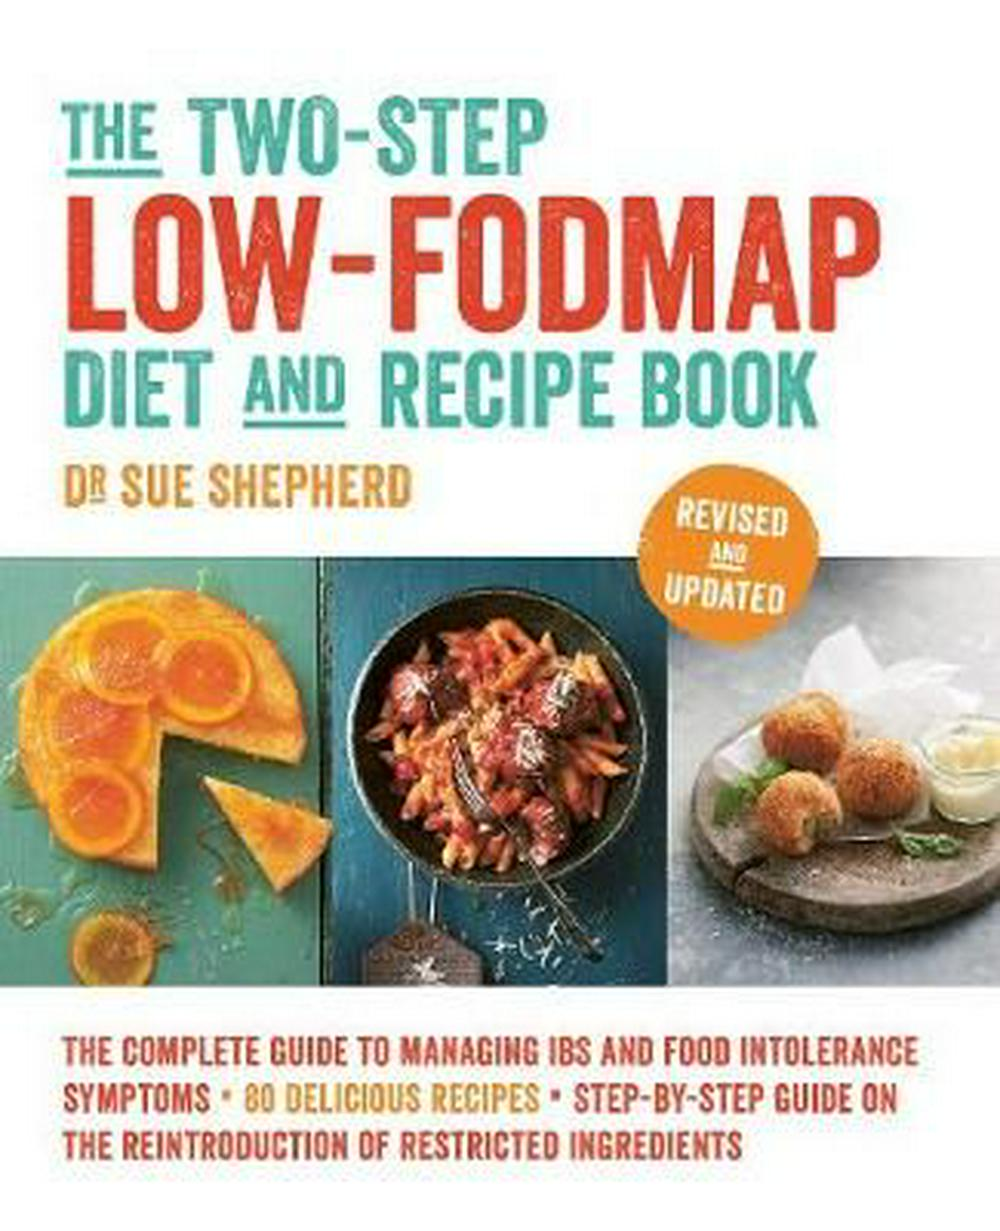 The Two-Step Low-FODMAP Diet and Recipe BookRevised and Updated by Dr Sue Shepherd,Sue Shepherd, ISBN: 9781760555375